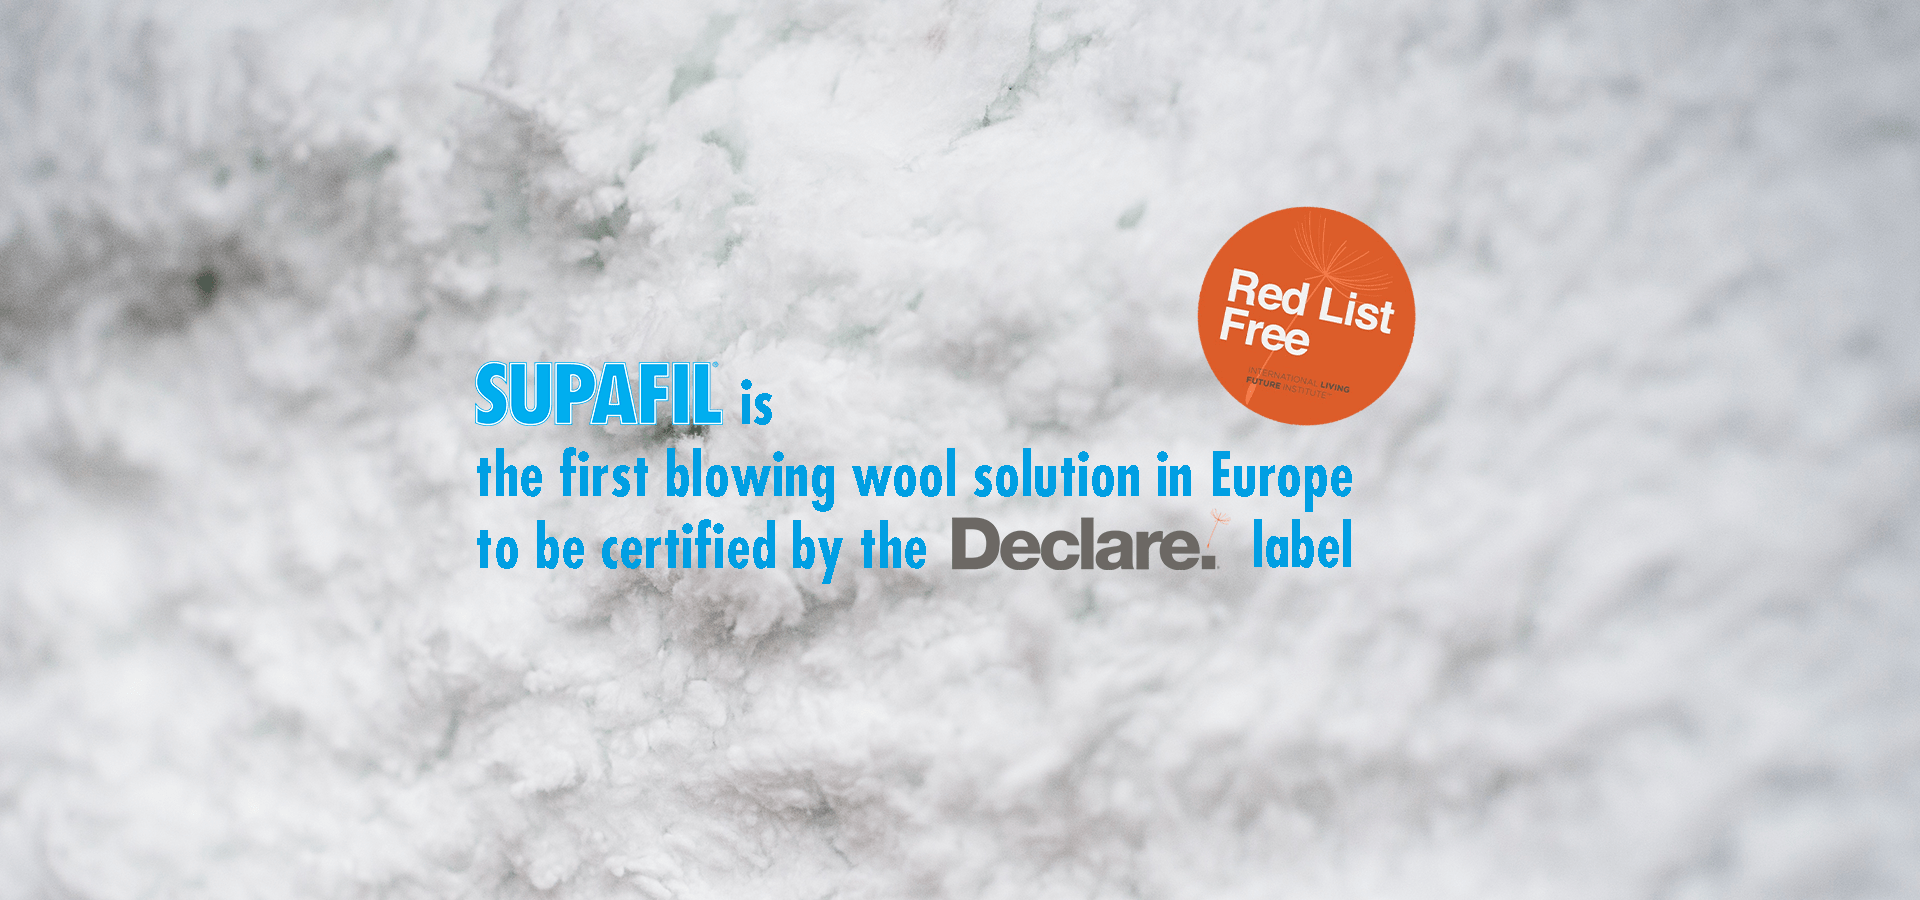 supafil declare label red list free